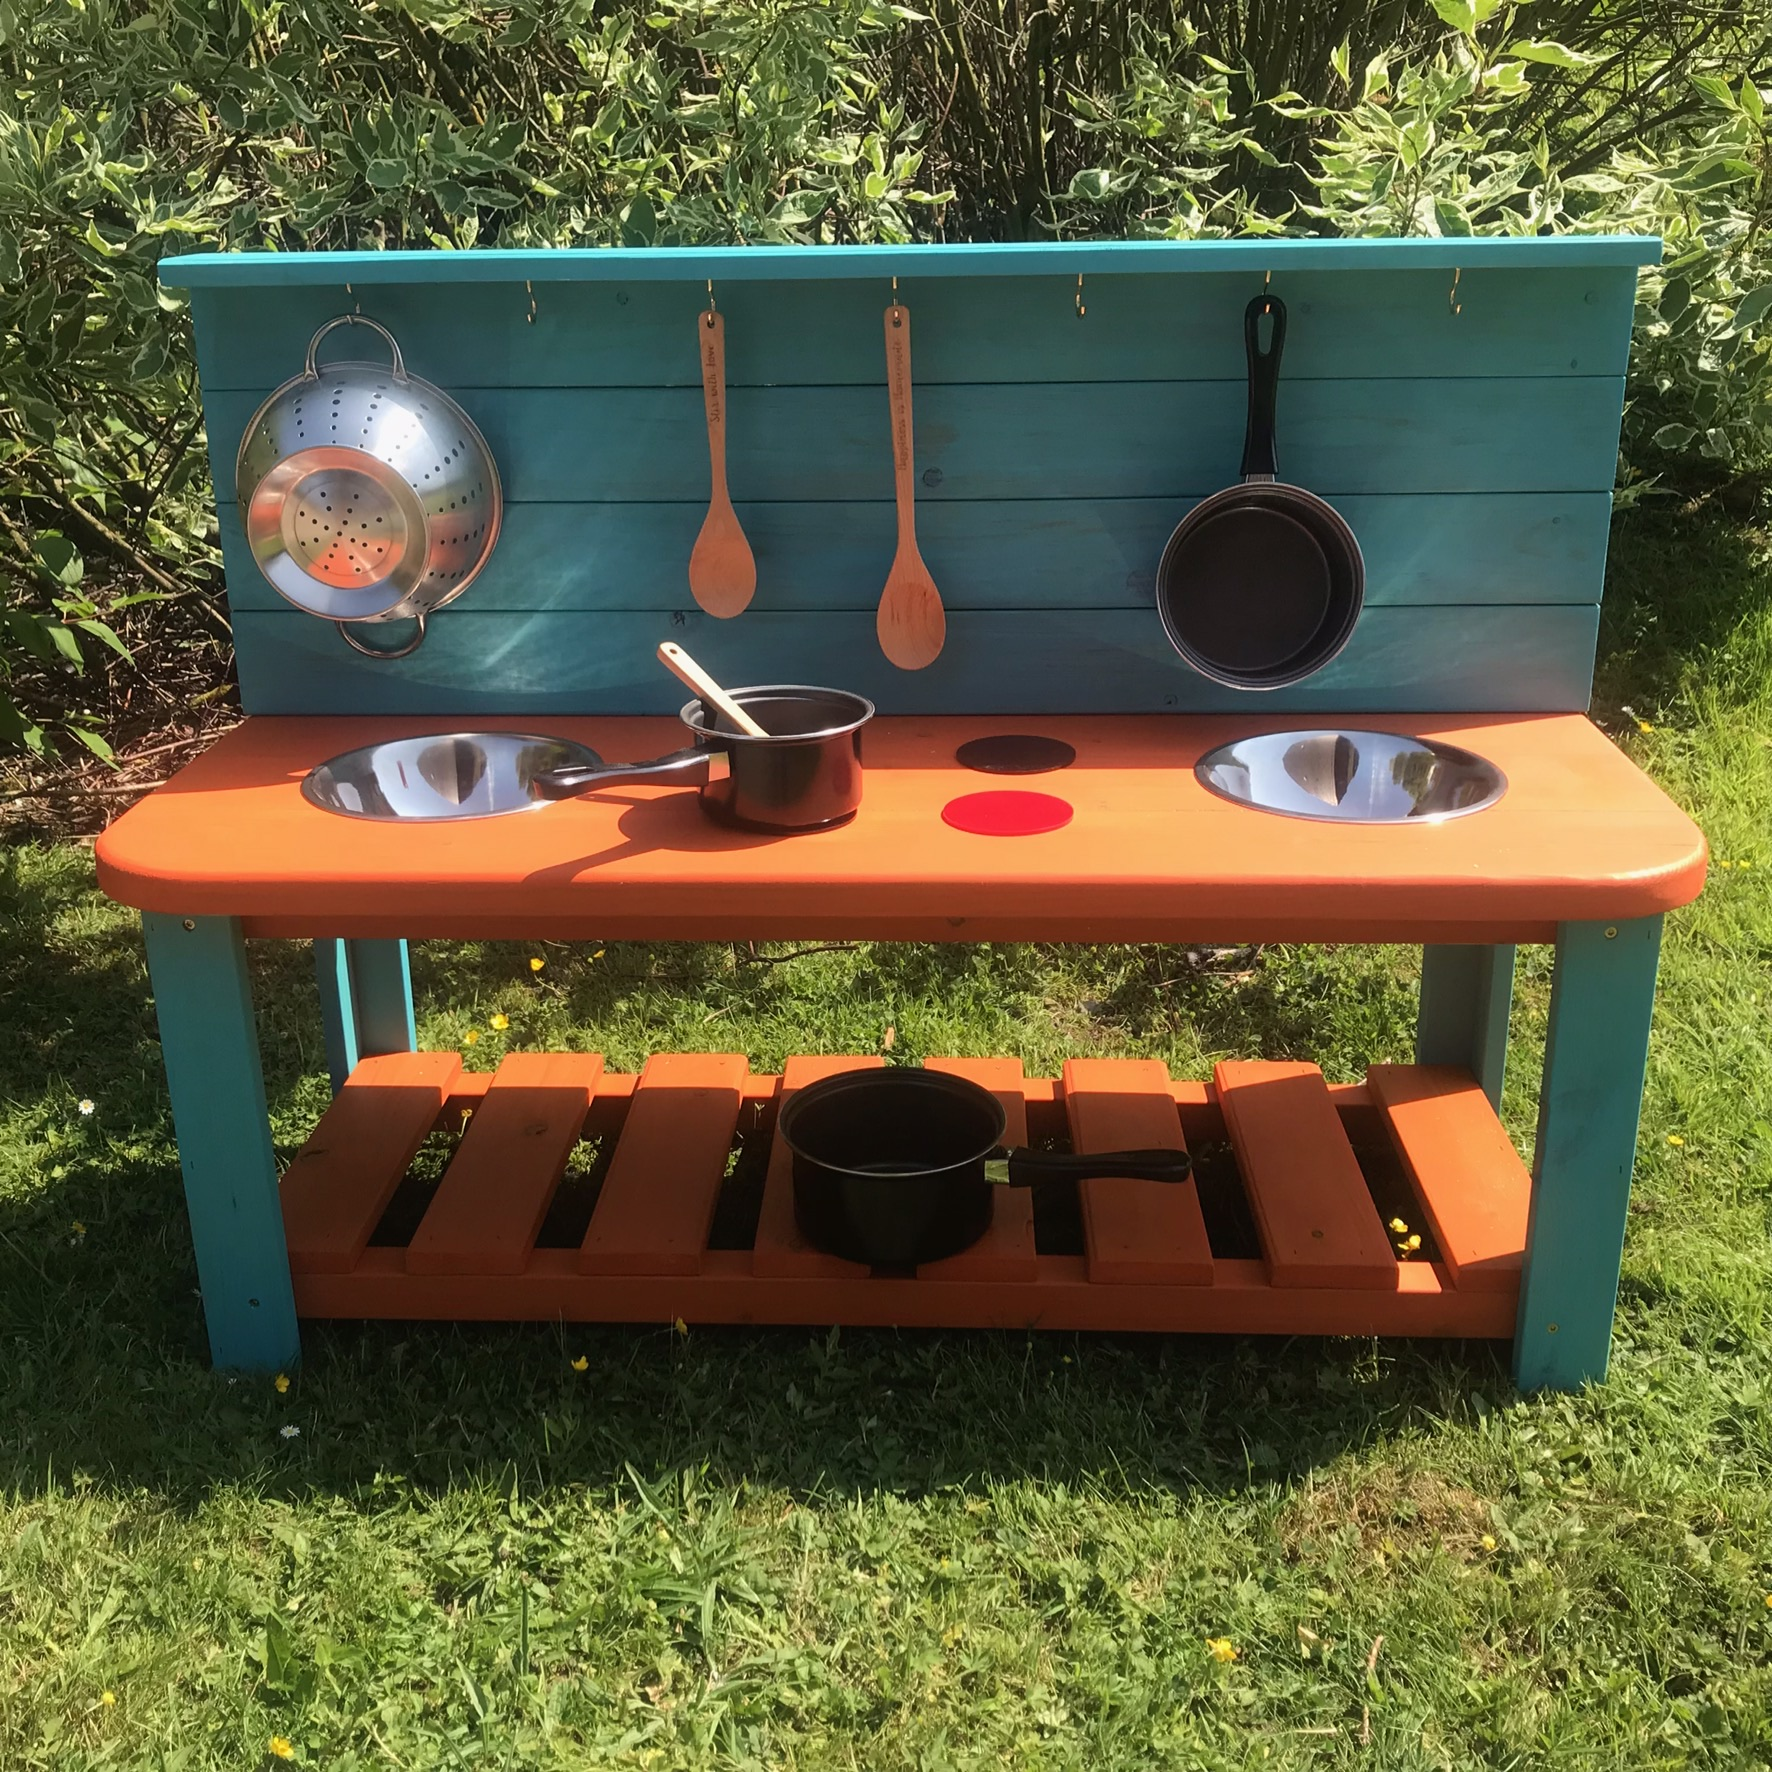 Discovering Days Wooden Mud Kitchen